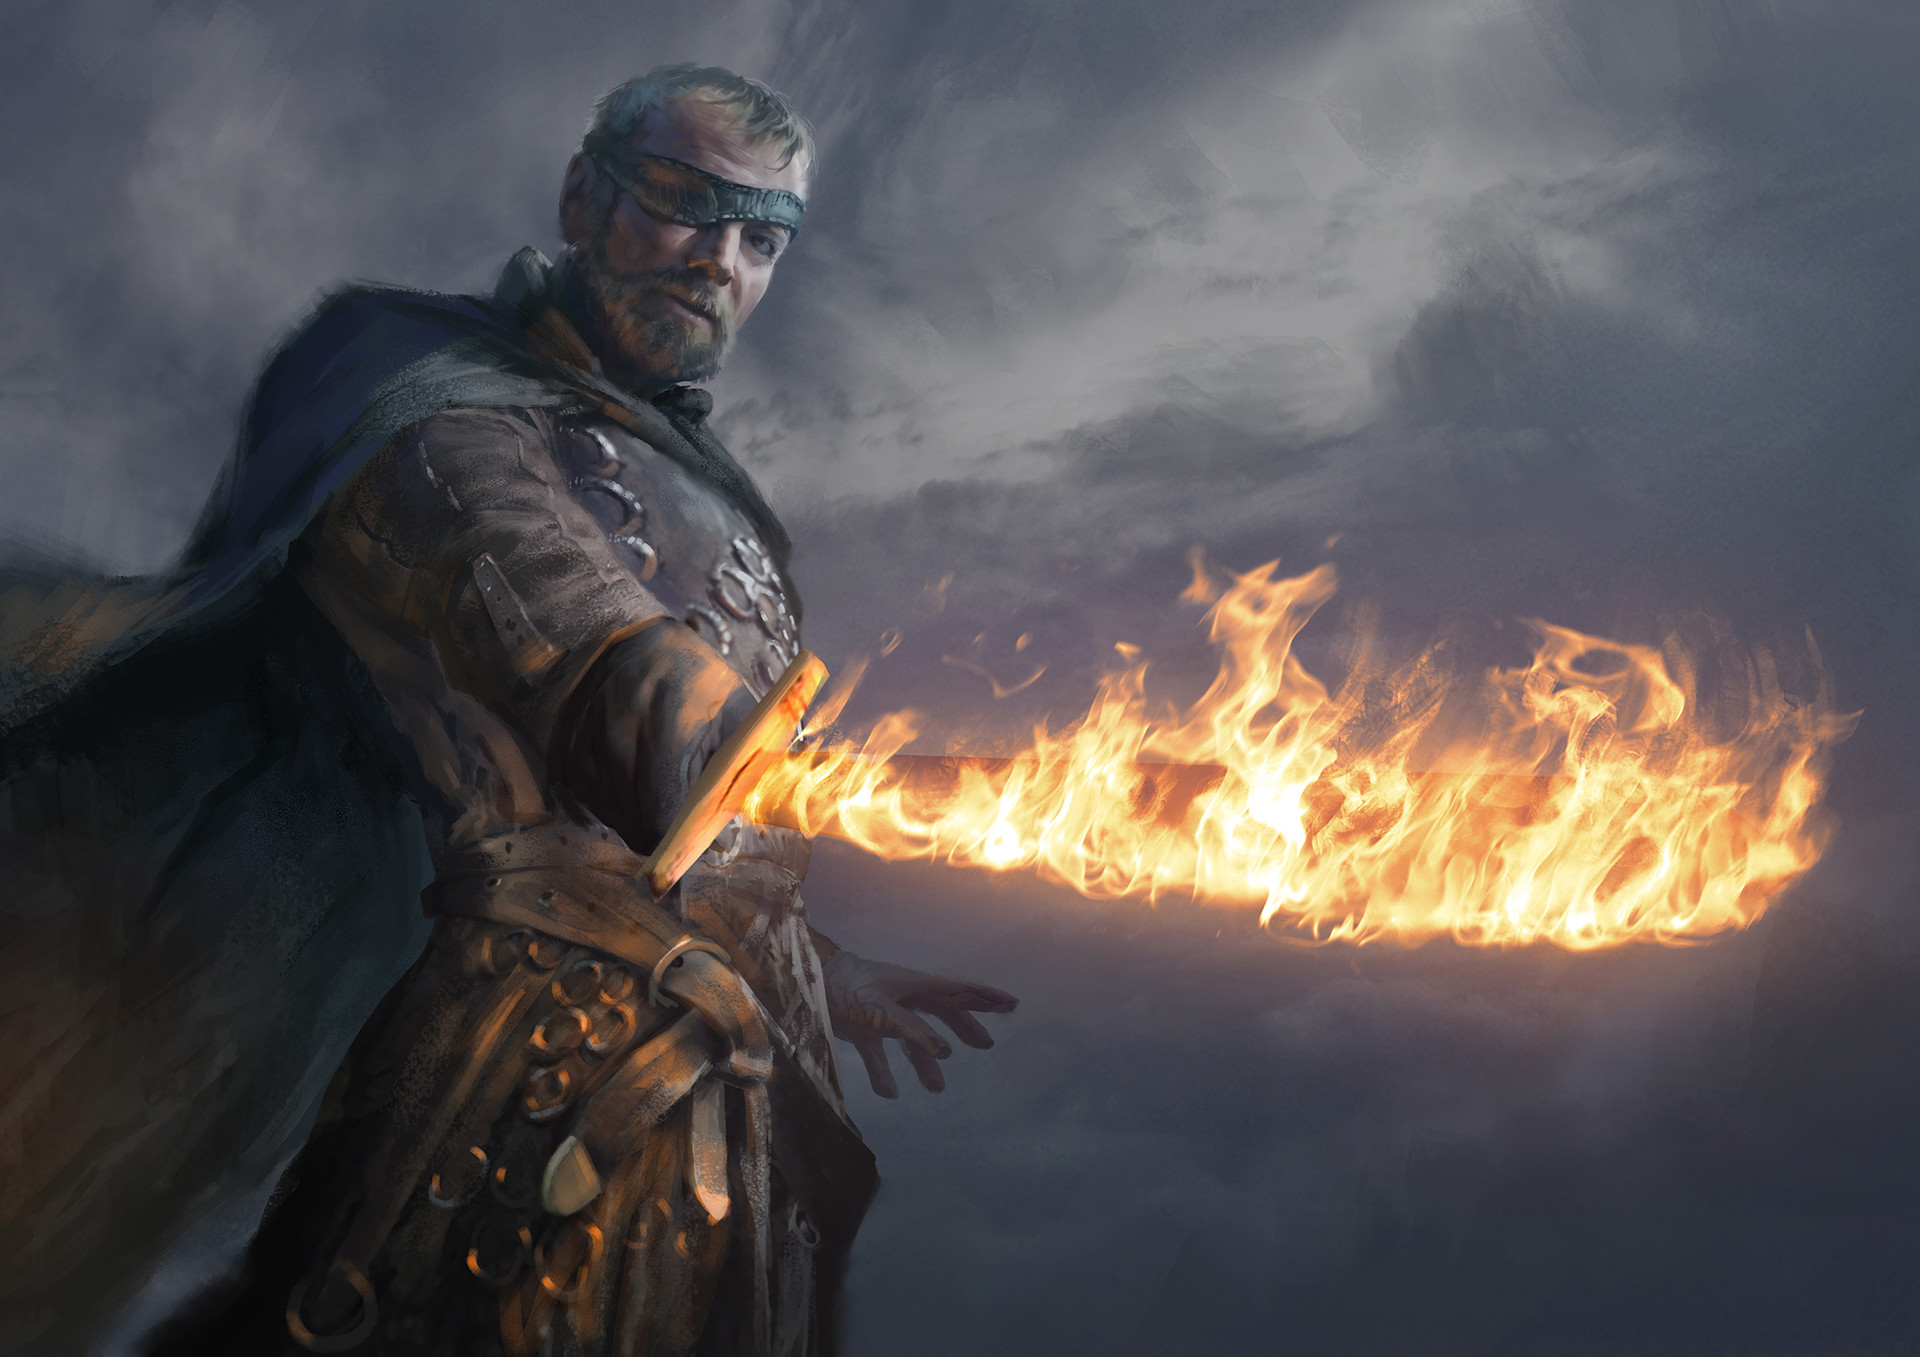 4k Game Of Thrones Wallpaper: Beric Dondarrion, HD Tv Shows, 4k Wallpapers, Images